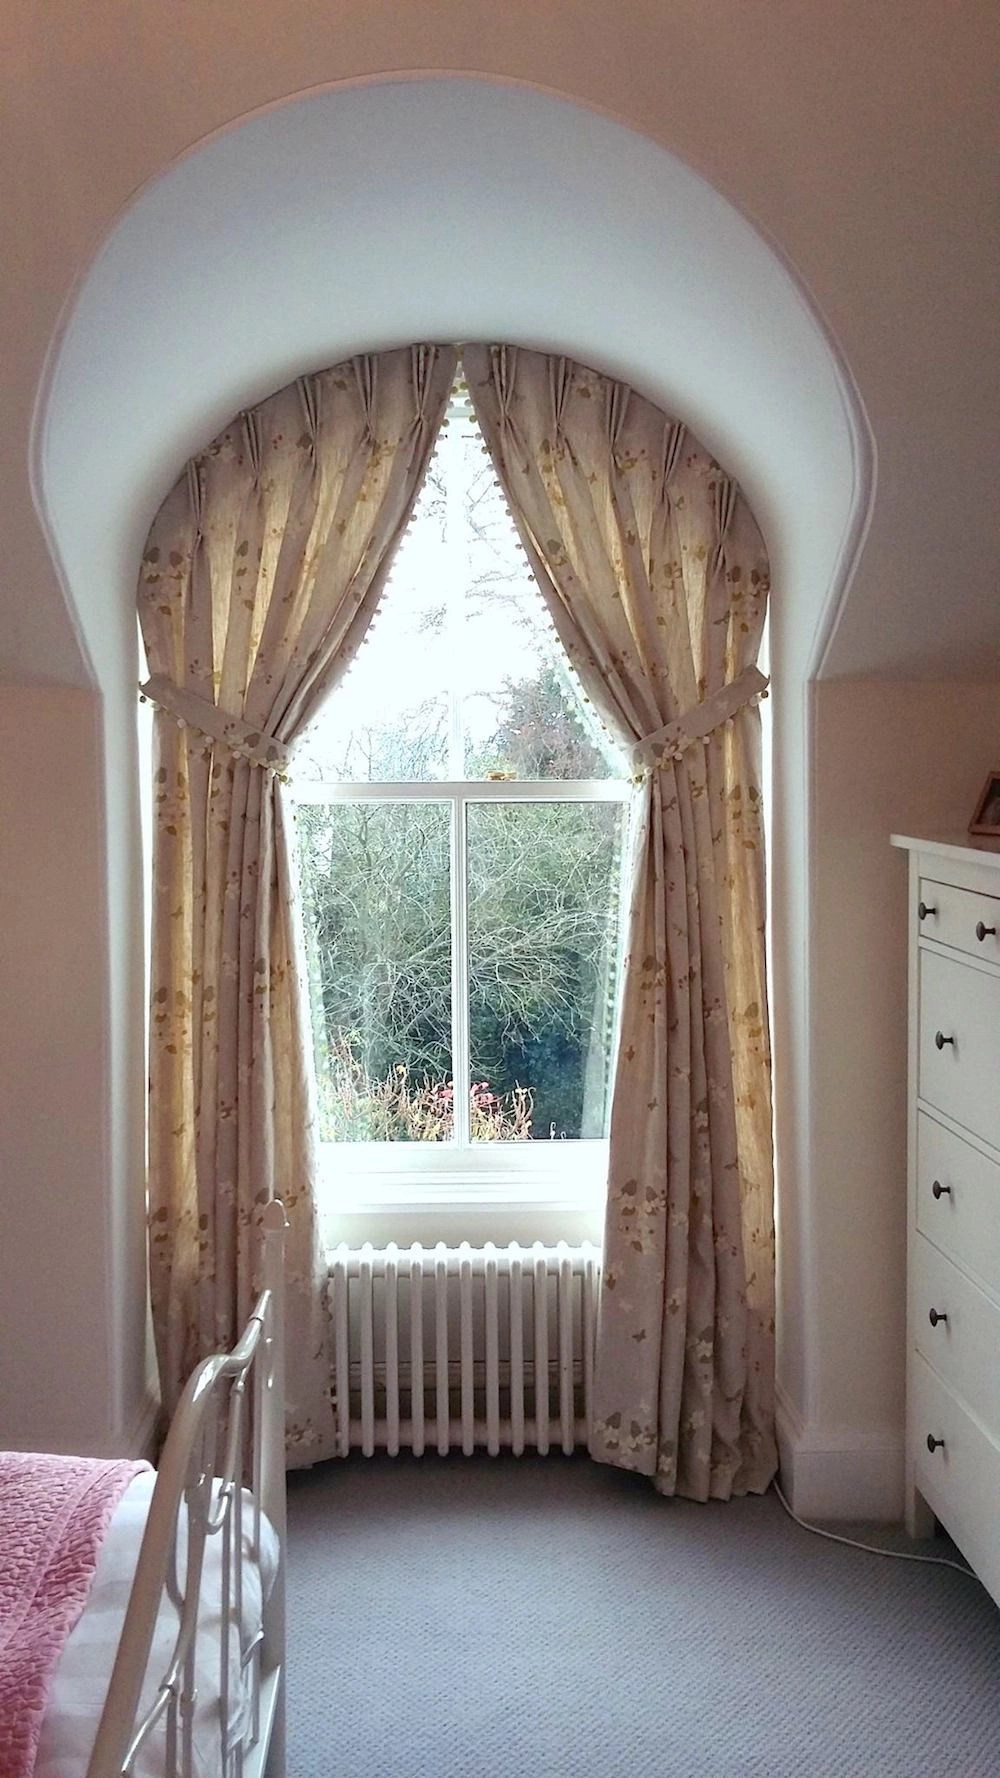 sets arched rhoduatajcom attachment drapery insulated doorway decoration my windows rod rods public curtains window for roomrhroomdeccom u